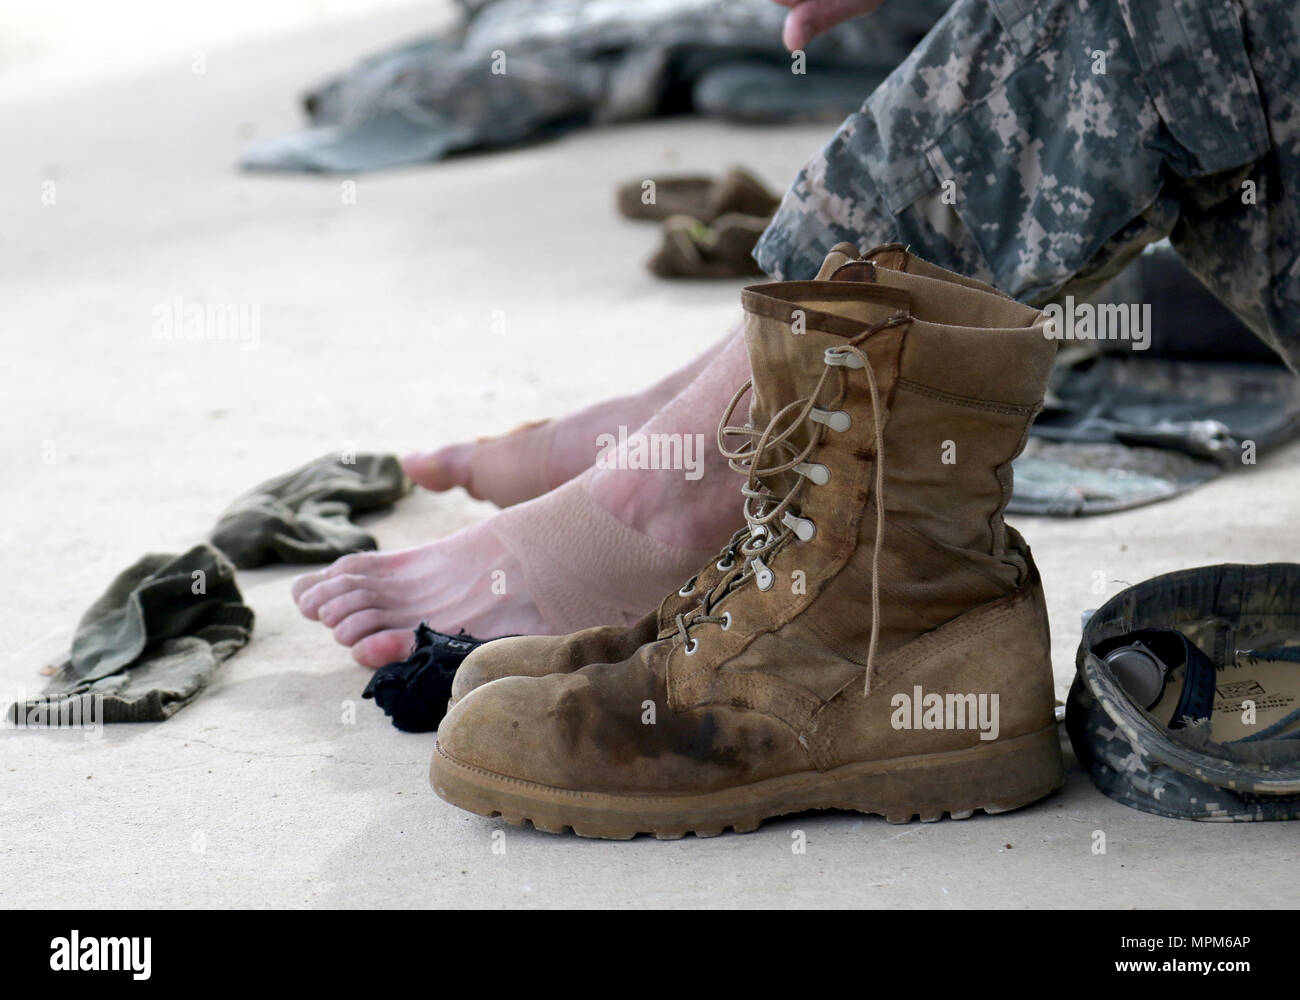 An Army Reserve competitor rests and airs out his boots after a road march, which was part of the 108th Training Command (IET) Best Warrior and Drill Sergeant of the Year Competitions at Camp Bullis, Texas, March 21, 2017. (U.S. Army Reserve photo by Maj. Michelle Lunato/released) - Stock Image